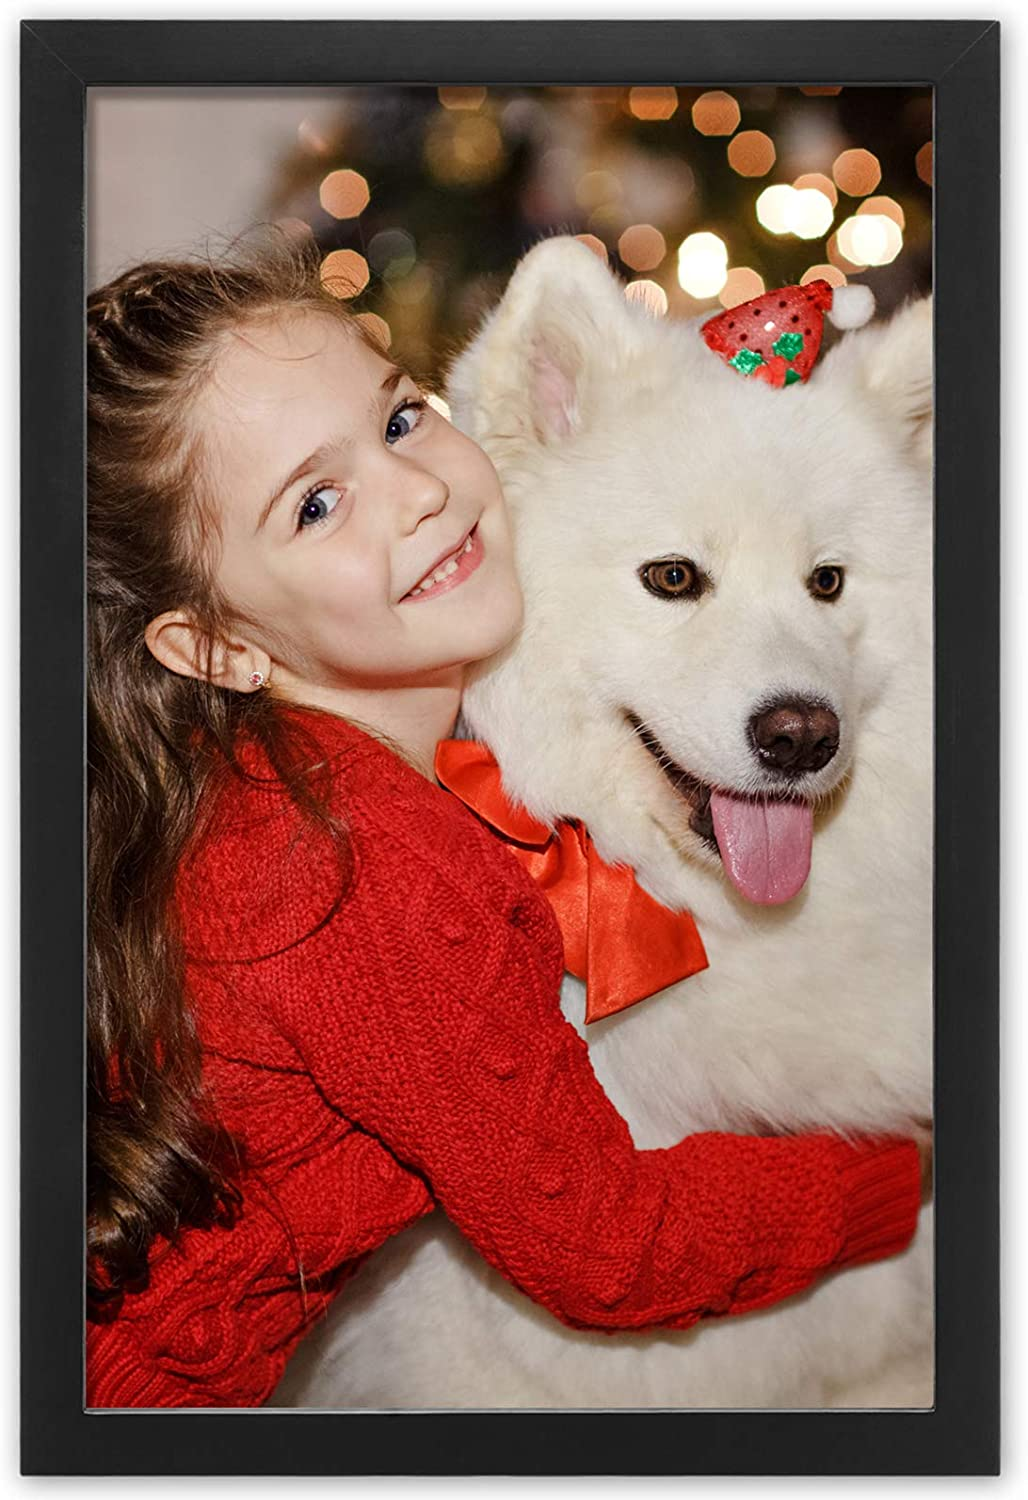 Ophanie 11x17 Picture Frame Poster Frames Wood of Solid Long Beach Mall Limited Special Price Made an